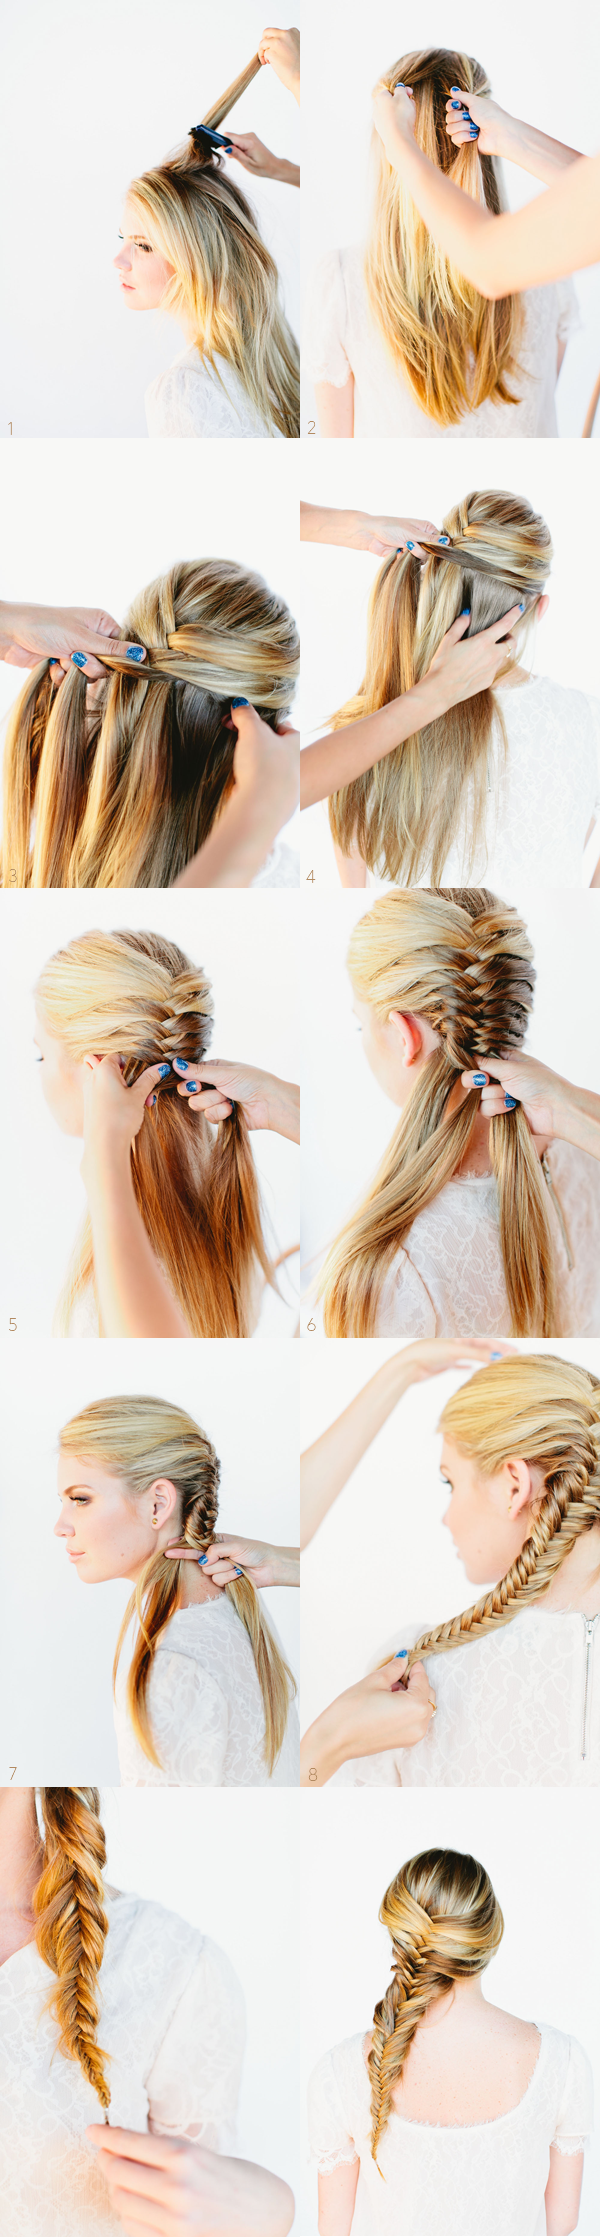 Reverse fishtail braid tutorial two ways.